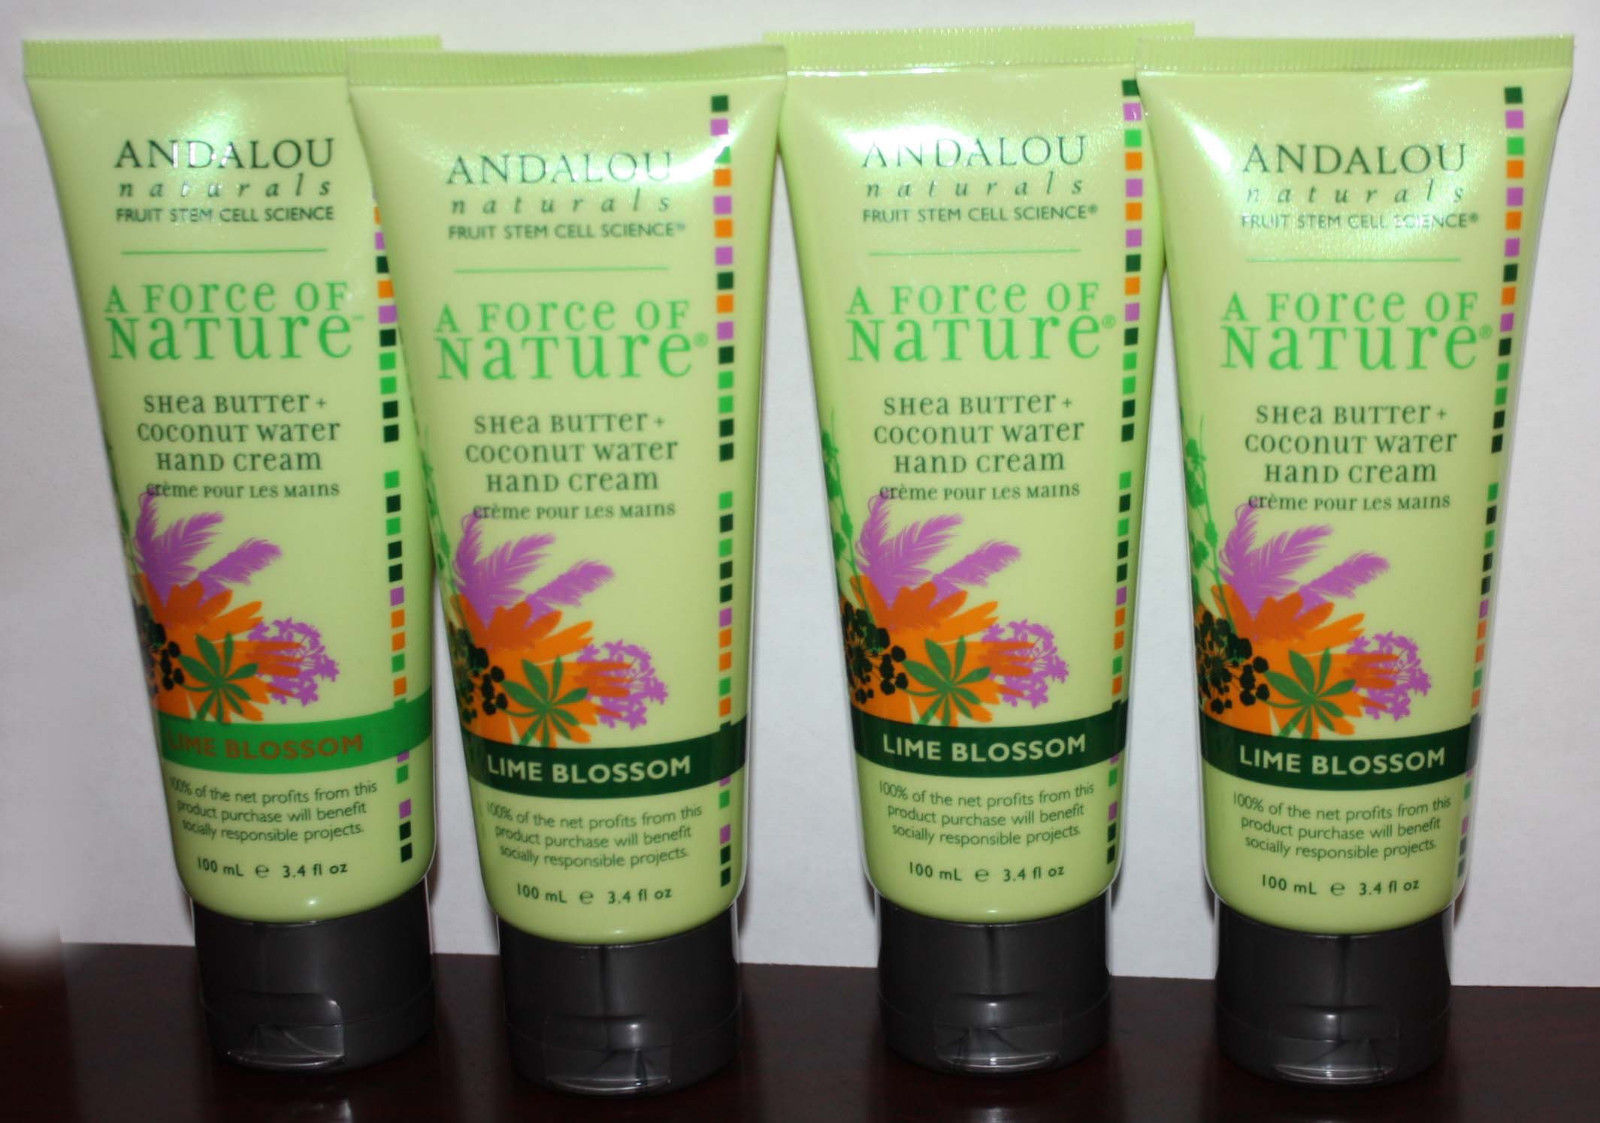 Lot Of 4 Andalou Naturals A FORCE OF NATURE Lime Blossom Hand Cream 3.4 oz Each 09418